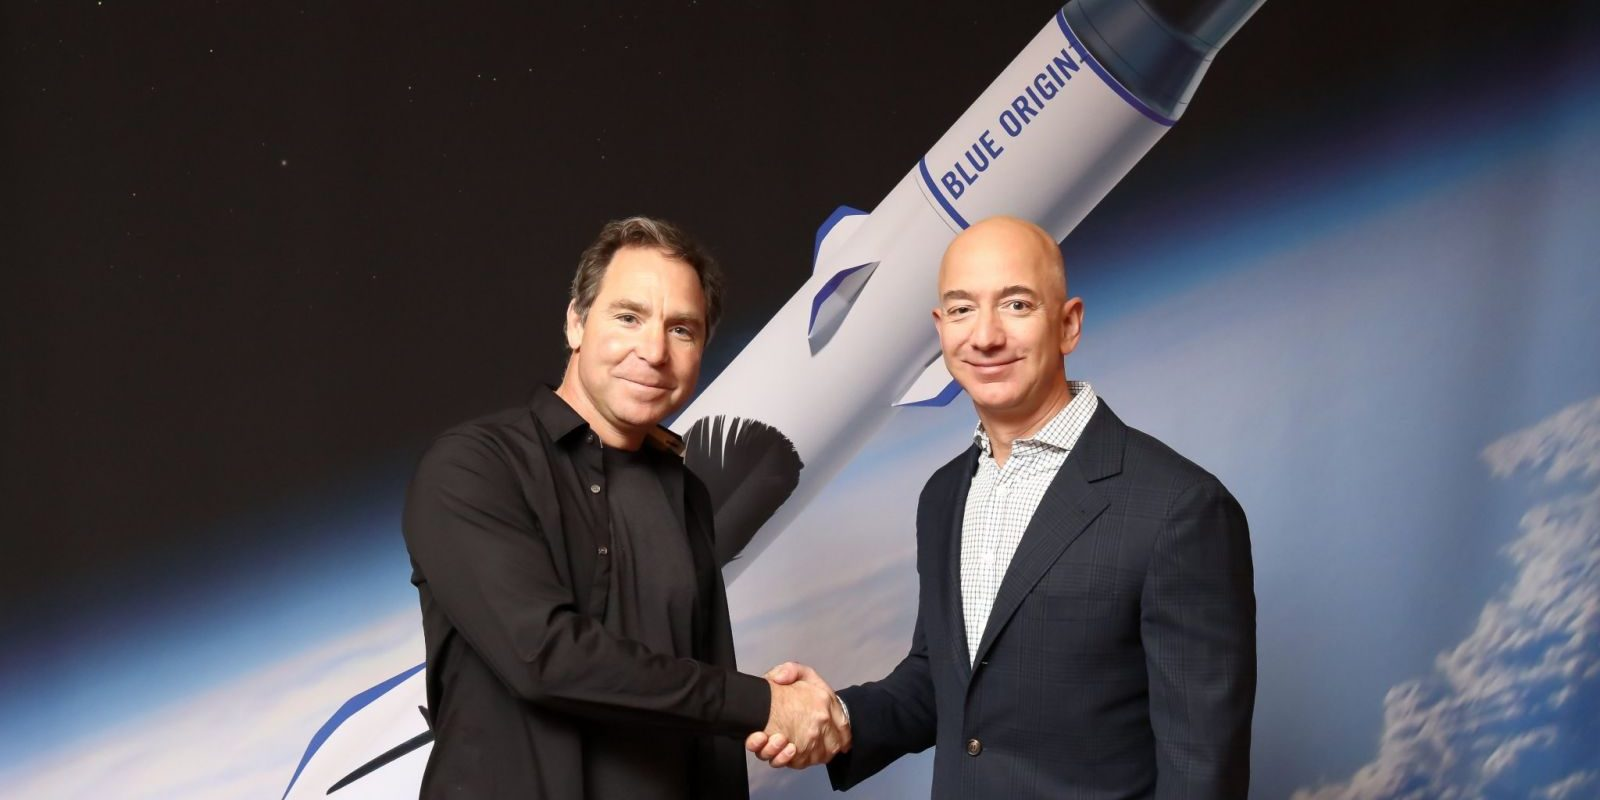 Greg Wyler of OneWeb and Jeff Bezos of Blue Origin.